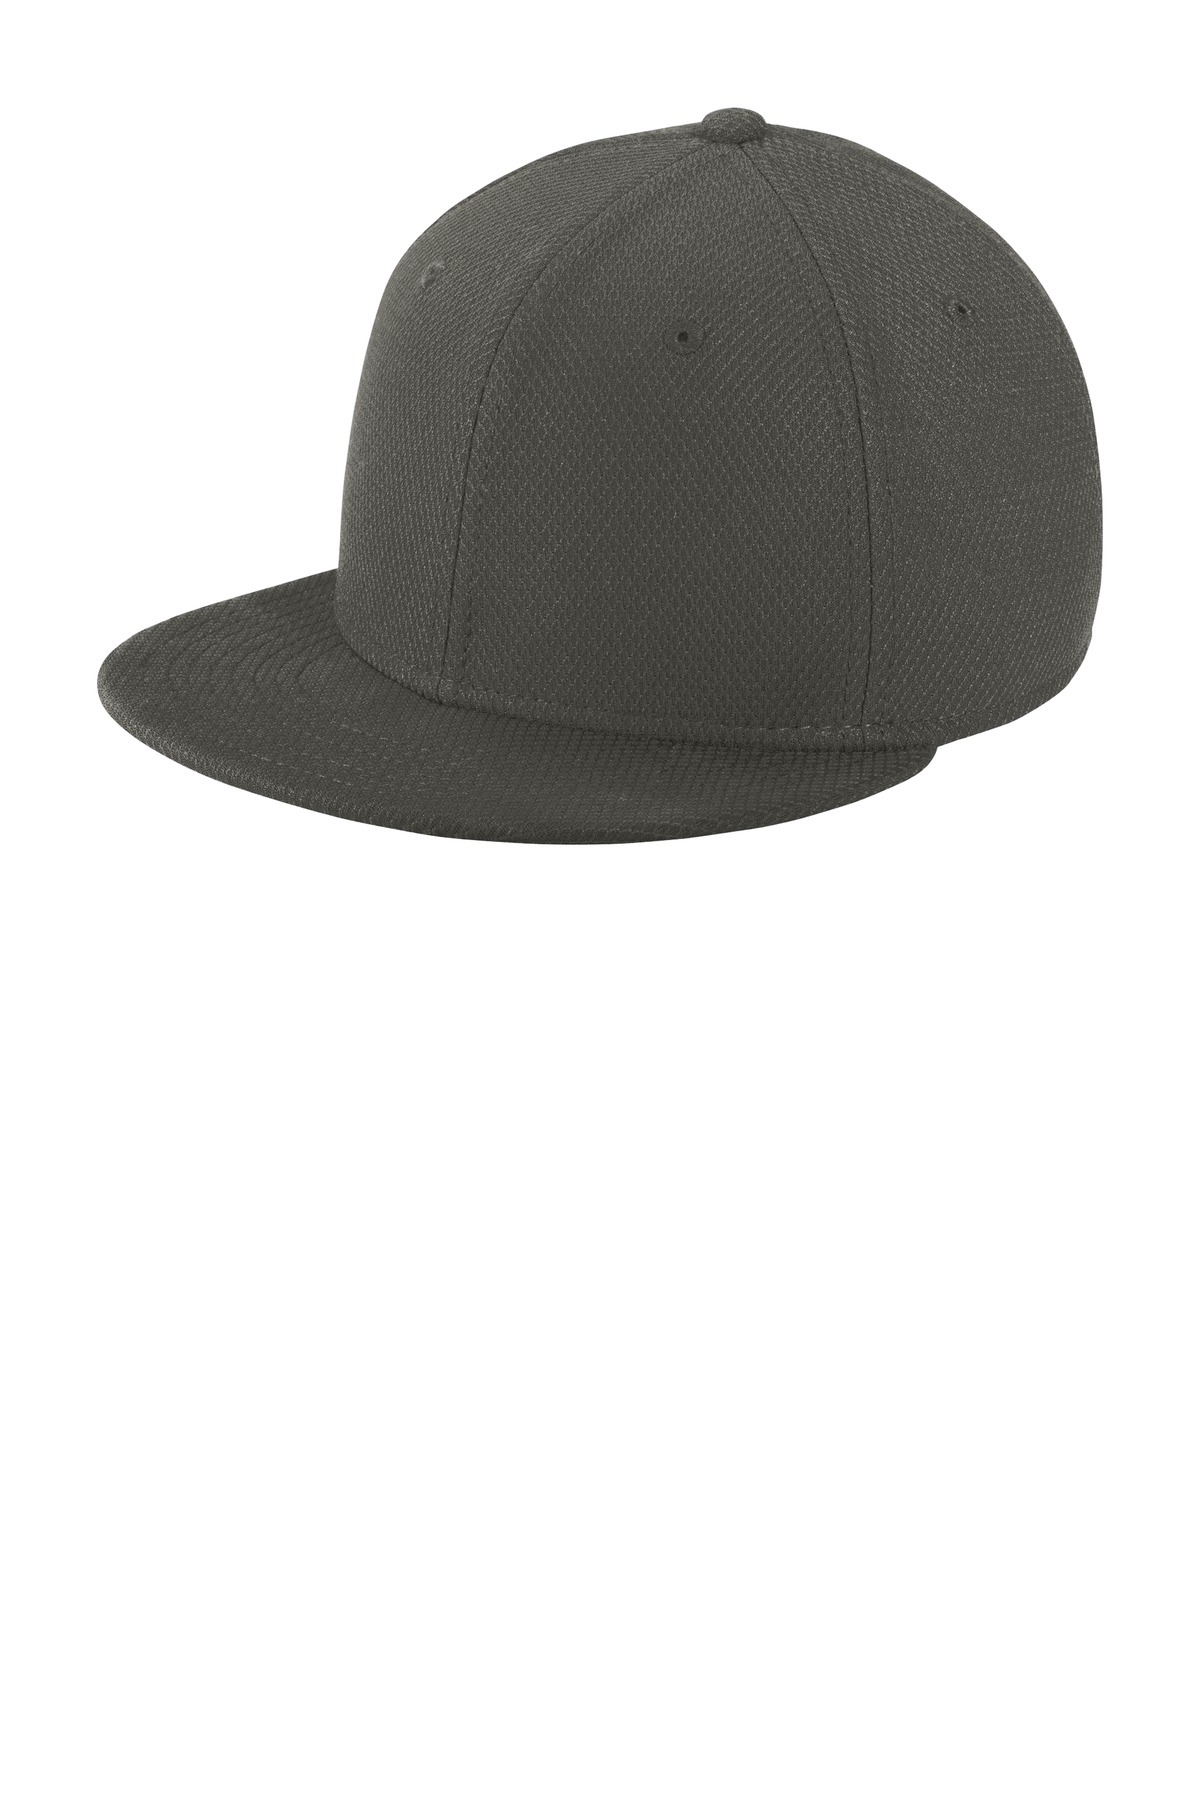 New Era  ®  Youth Original Fit Diamond Era Flat Bill Snapback Cap. NE304 - Graphite